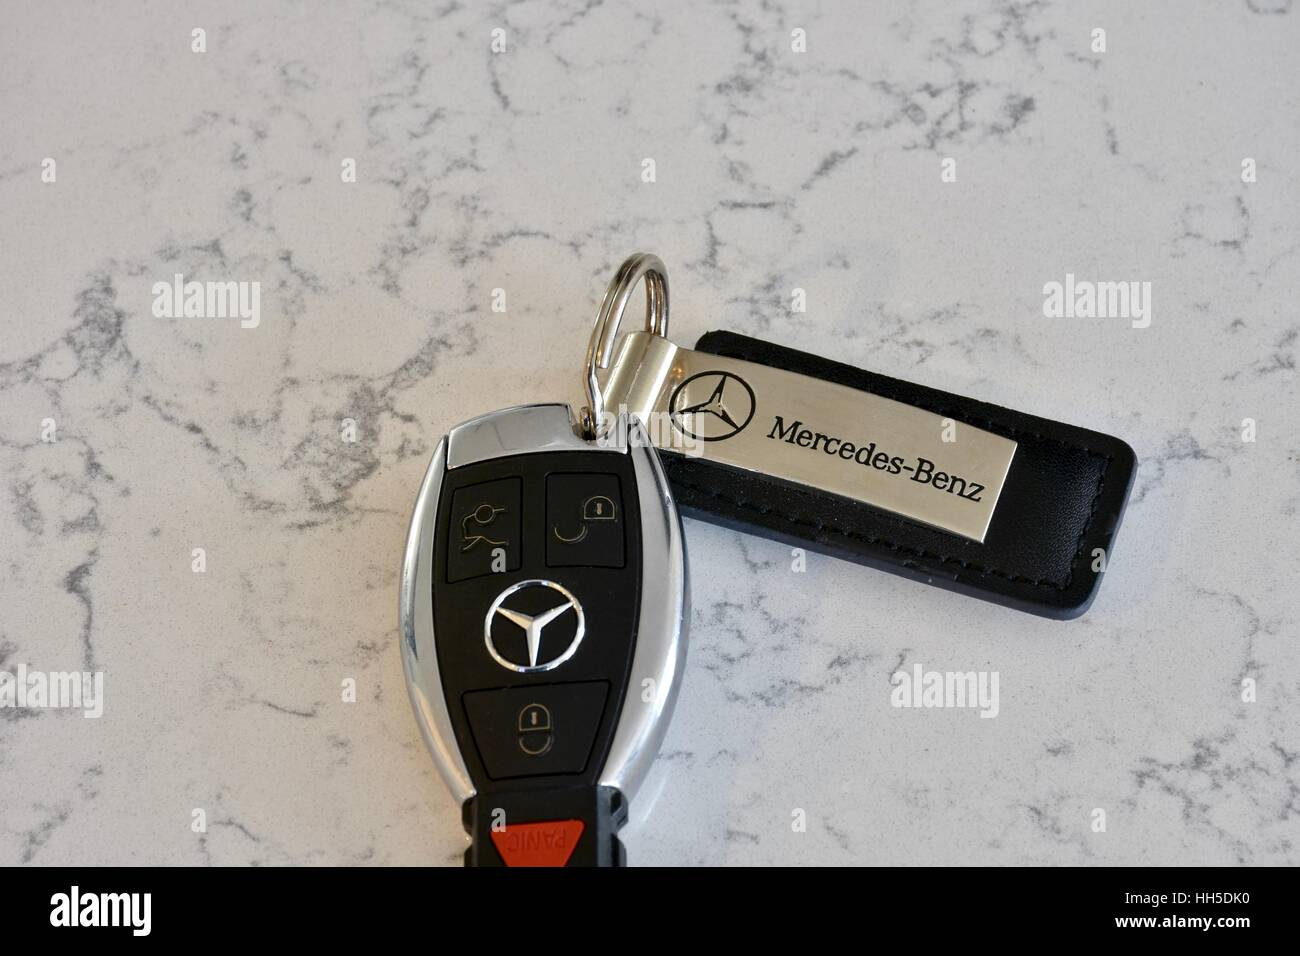 Delightful Mercedes Benz Key Fob On A White Marble Surface   Stock Image